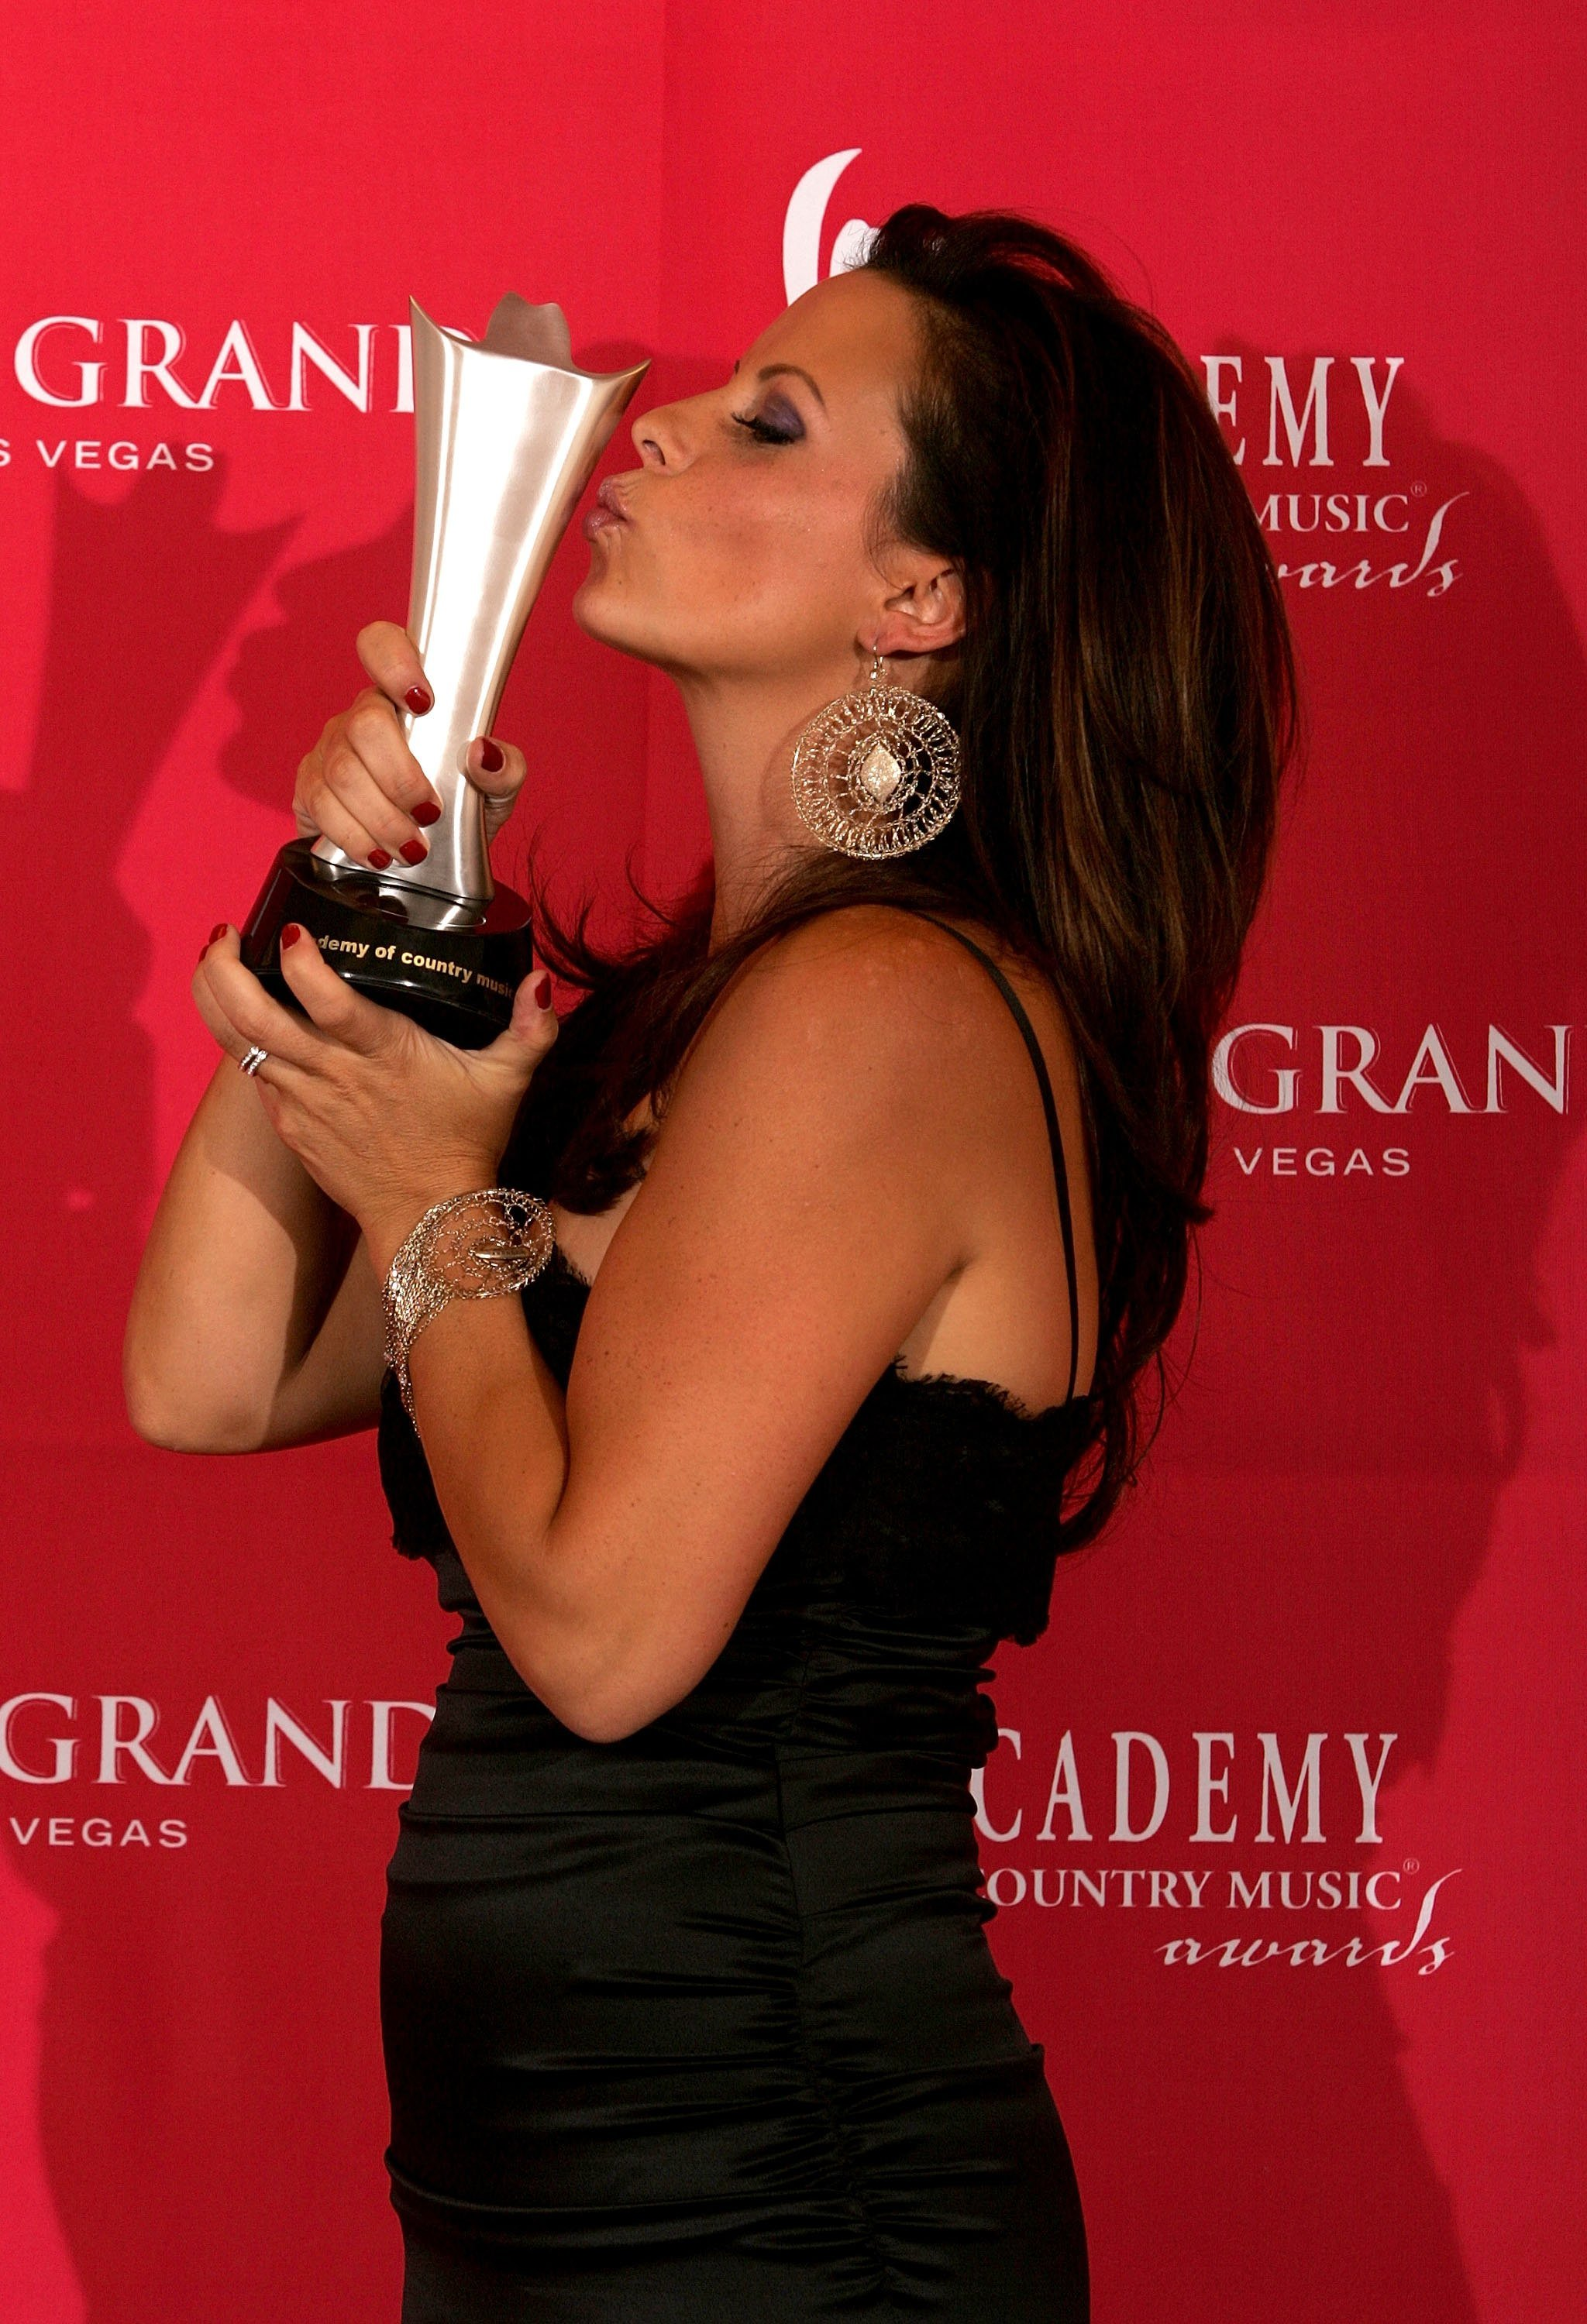 Sara Evans holding her award with both hands and kissing it